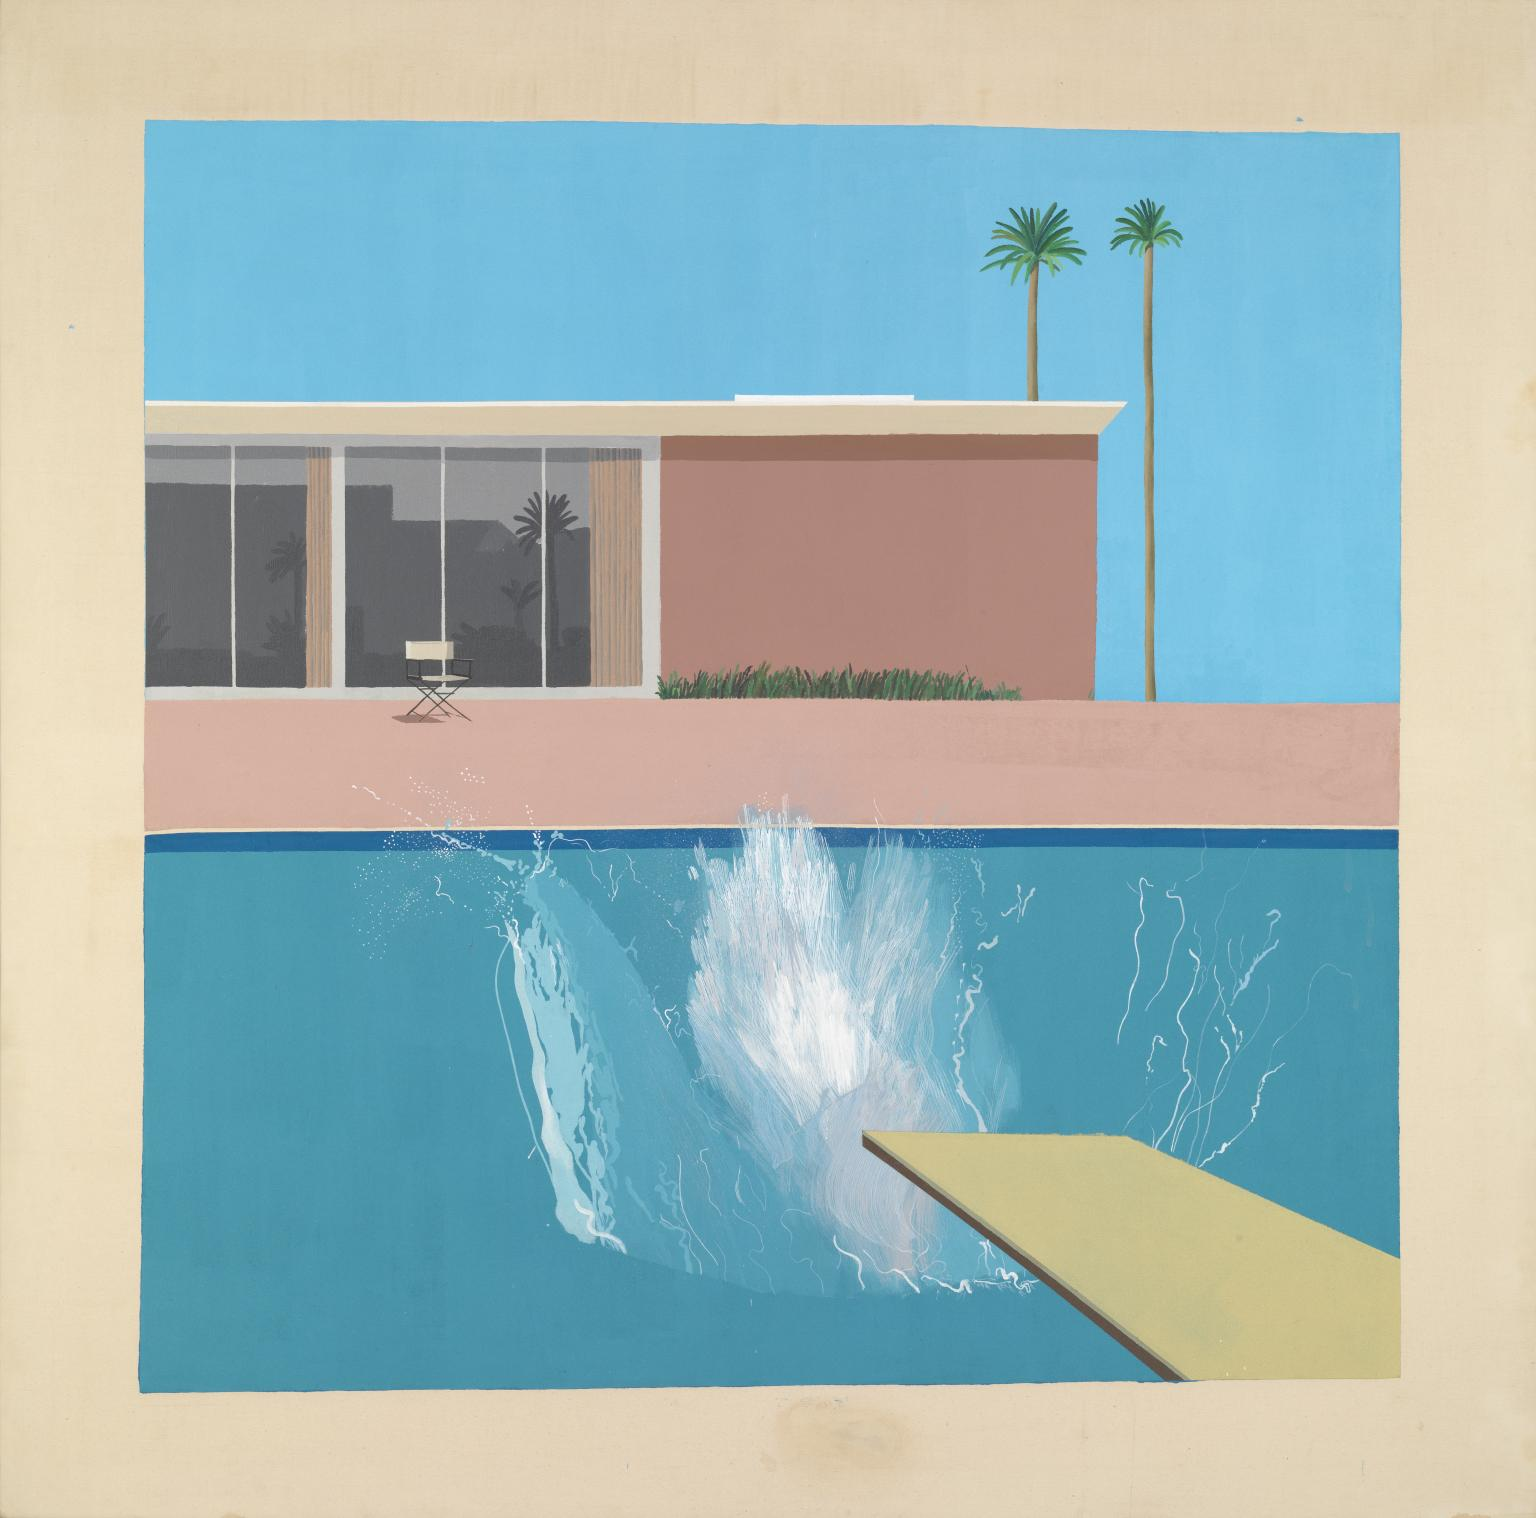 A Bigger Splash, David Hockney, 1967. Tate Britain